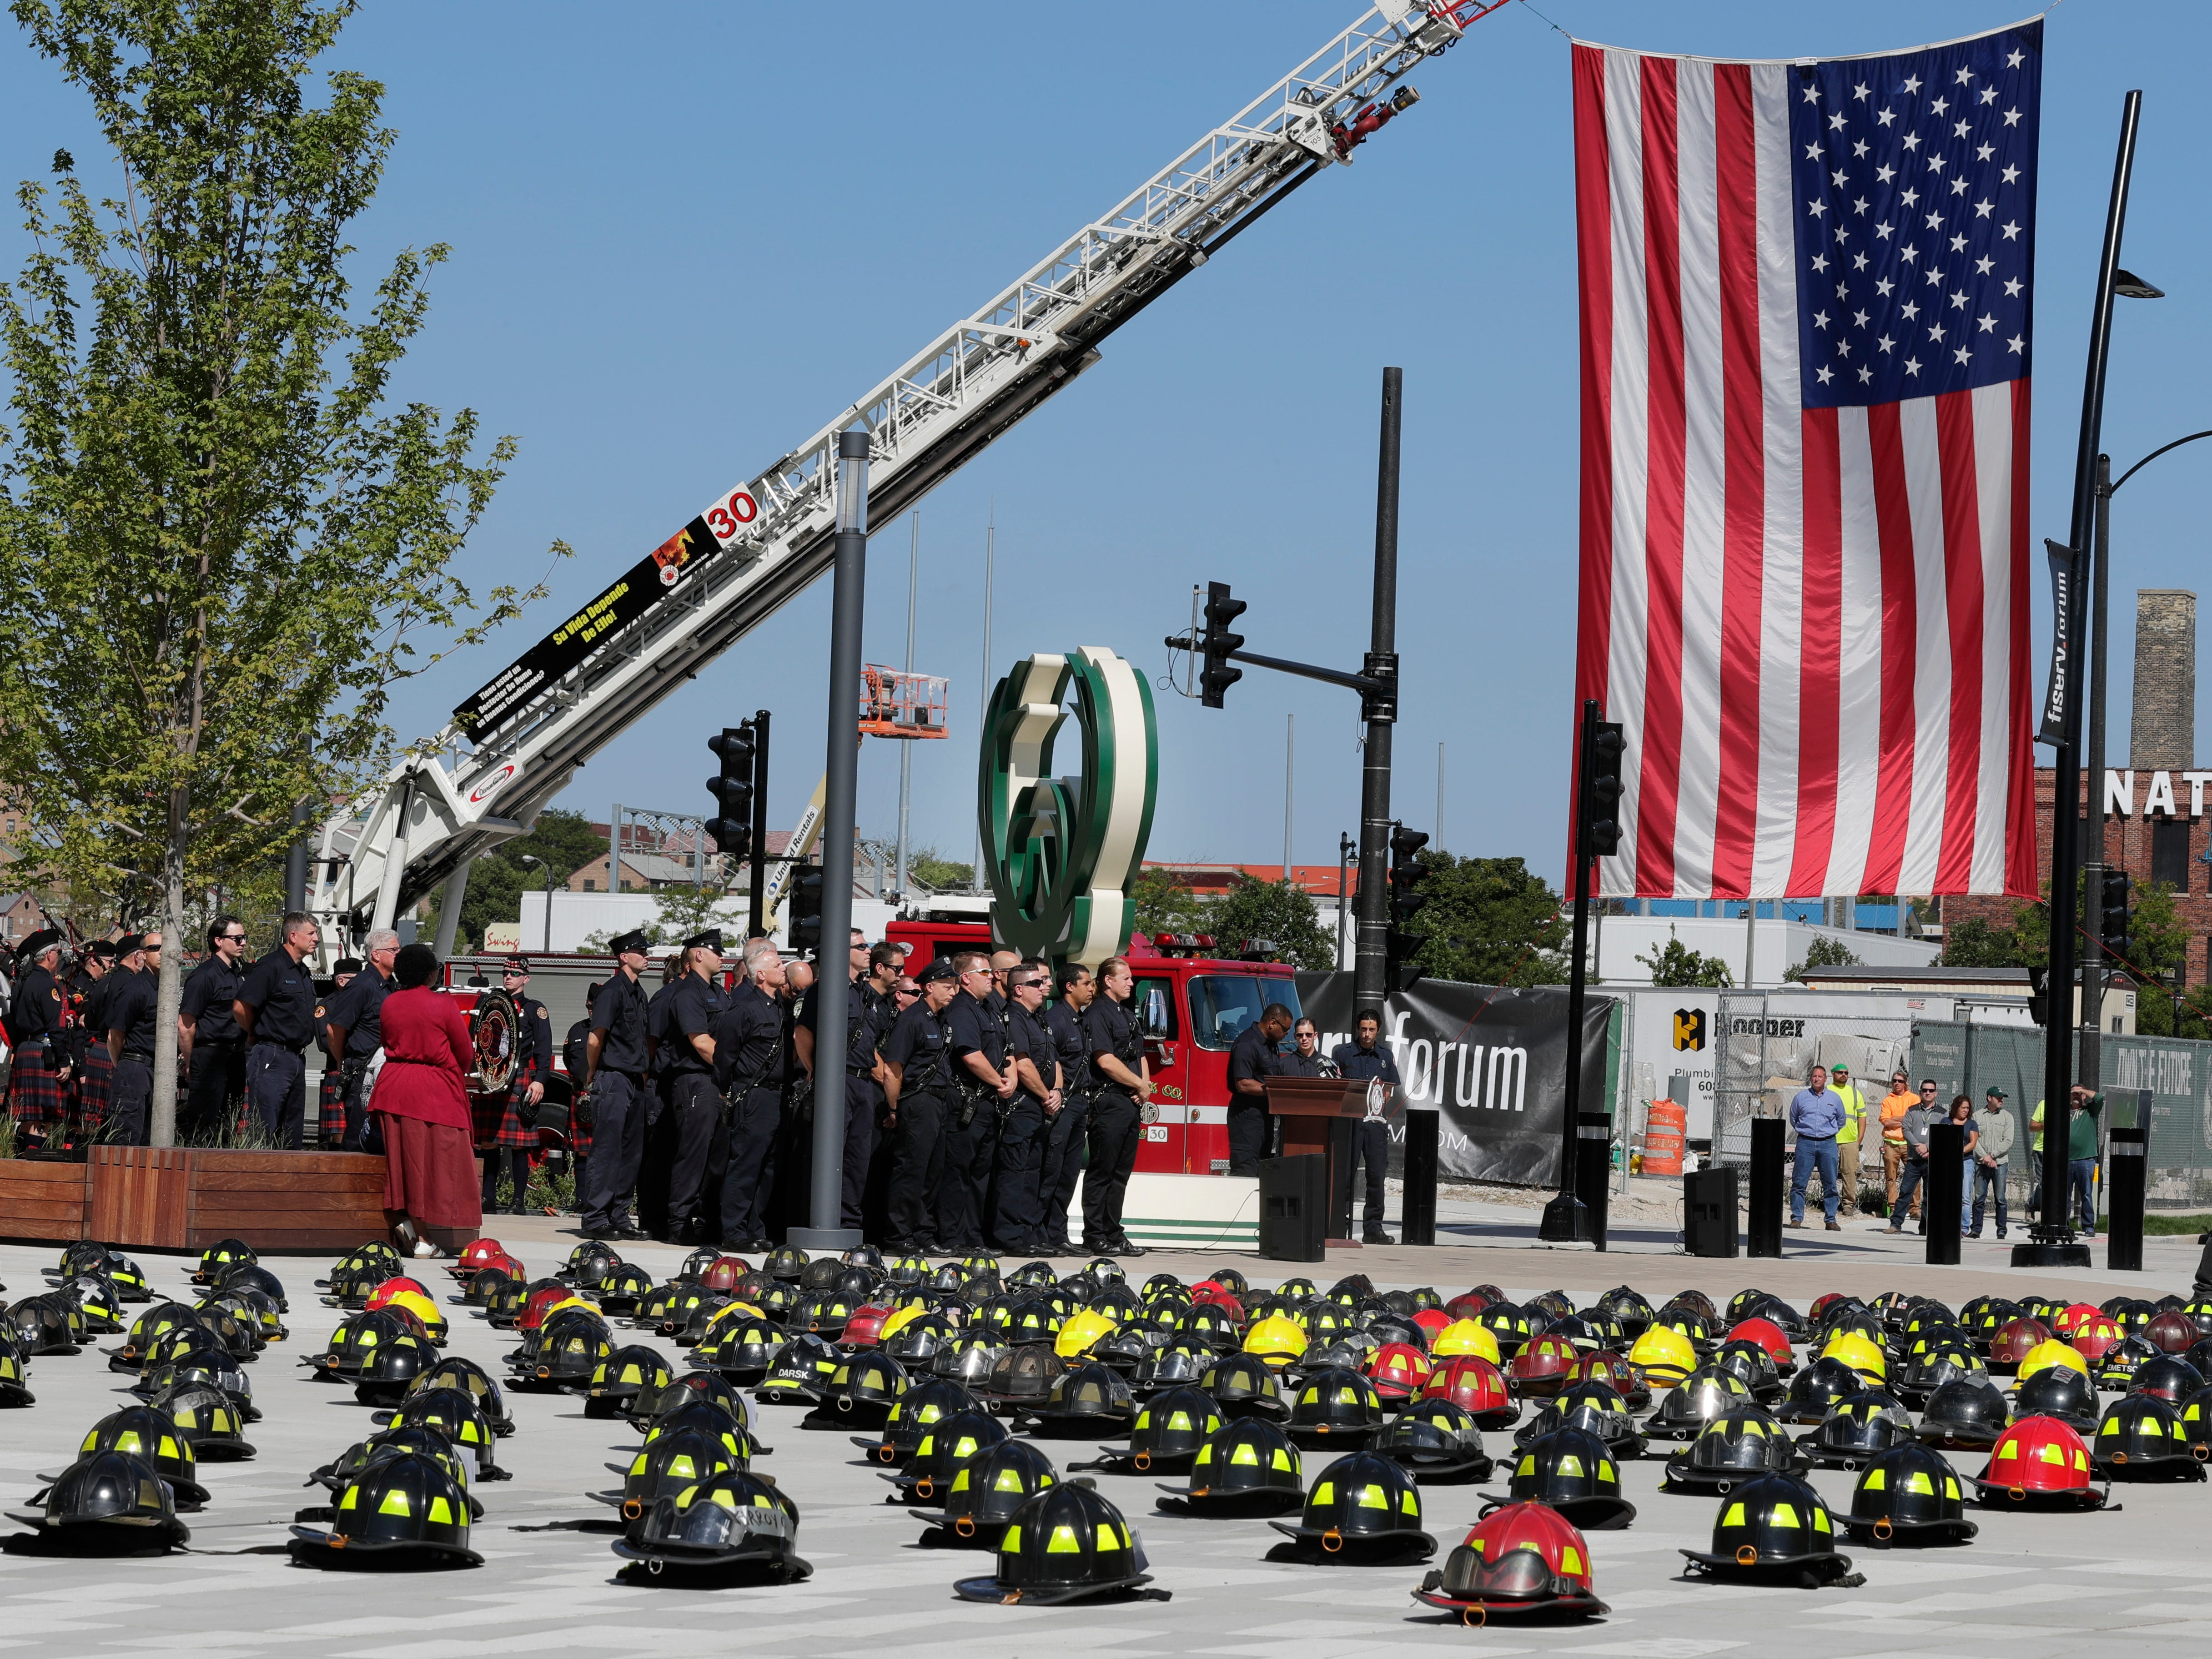 The Milwaukee Fire Department commemorates the 17th anniversary of the 9-11 attacks and honors those who lost their lives during a ceremony at Fiserv Forum.